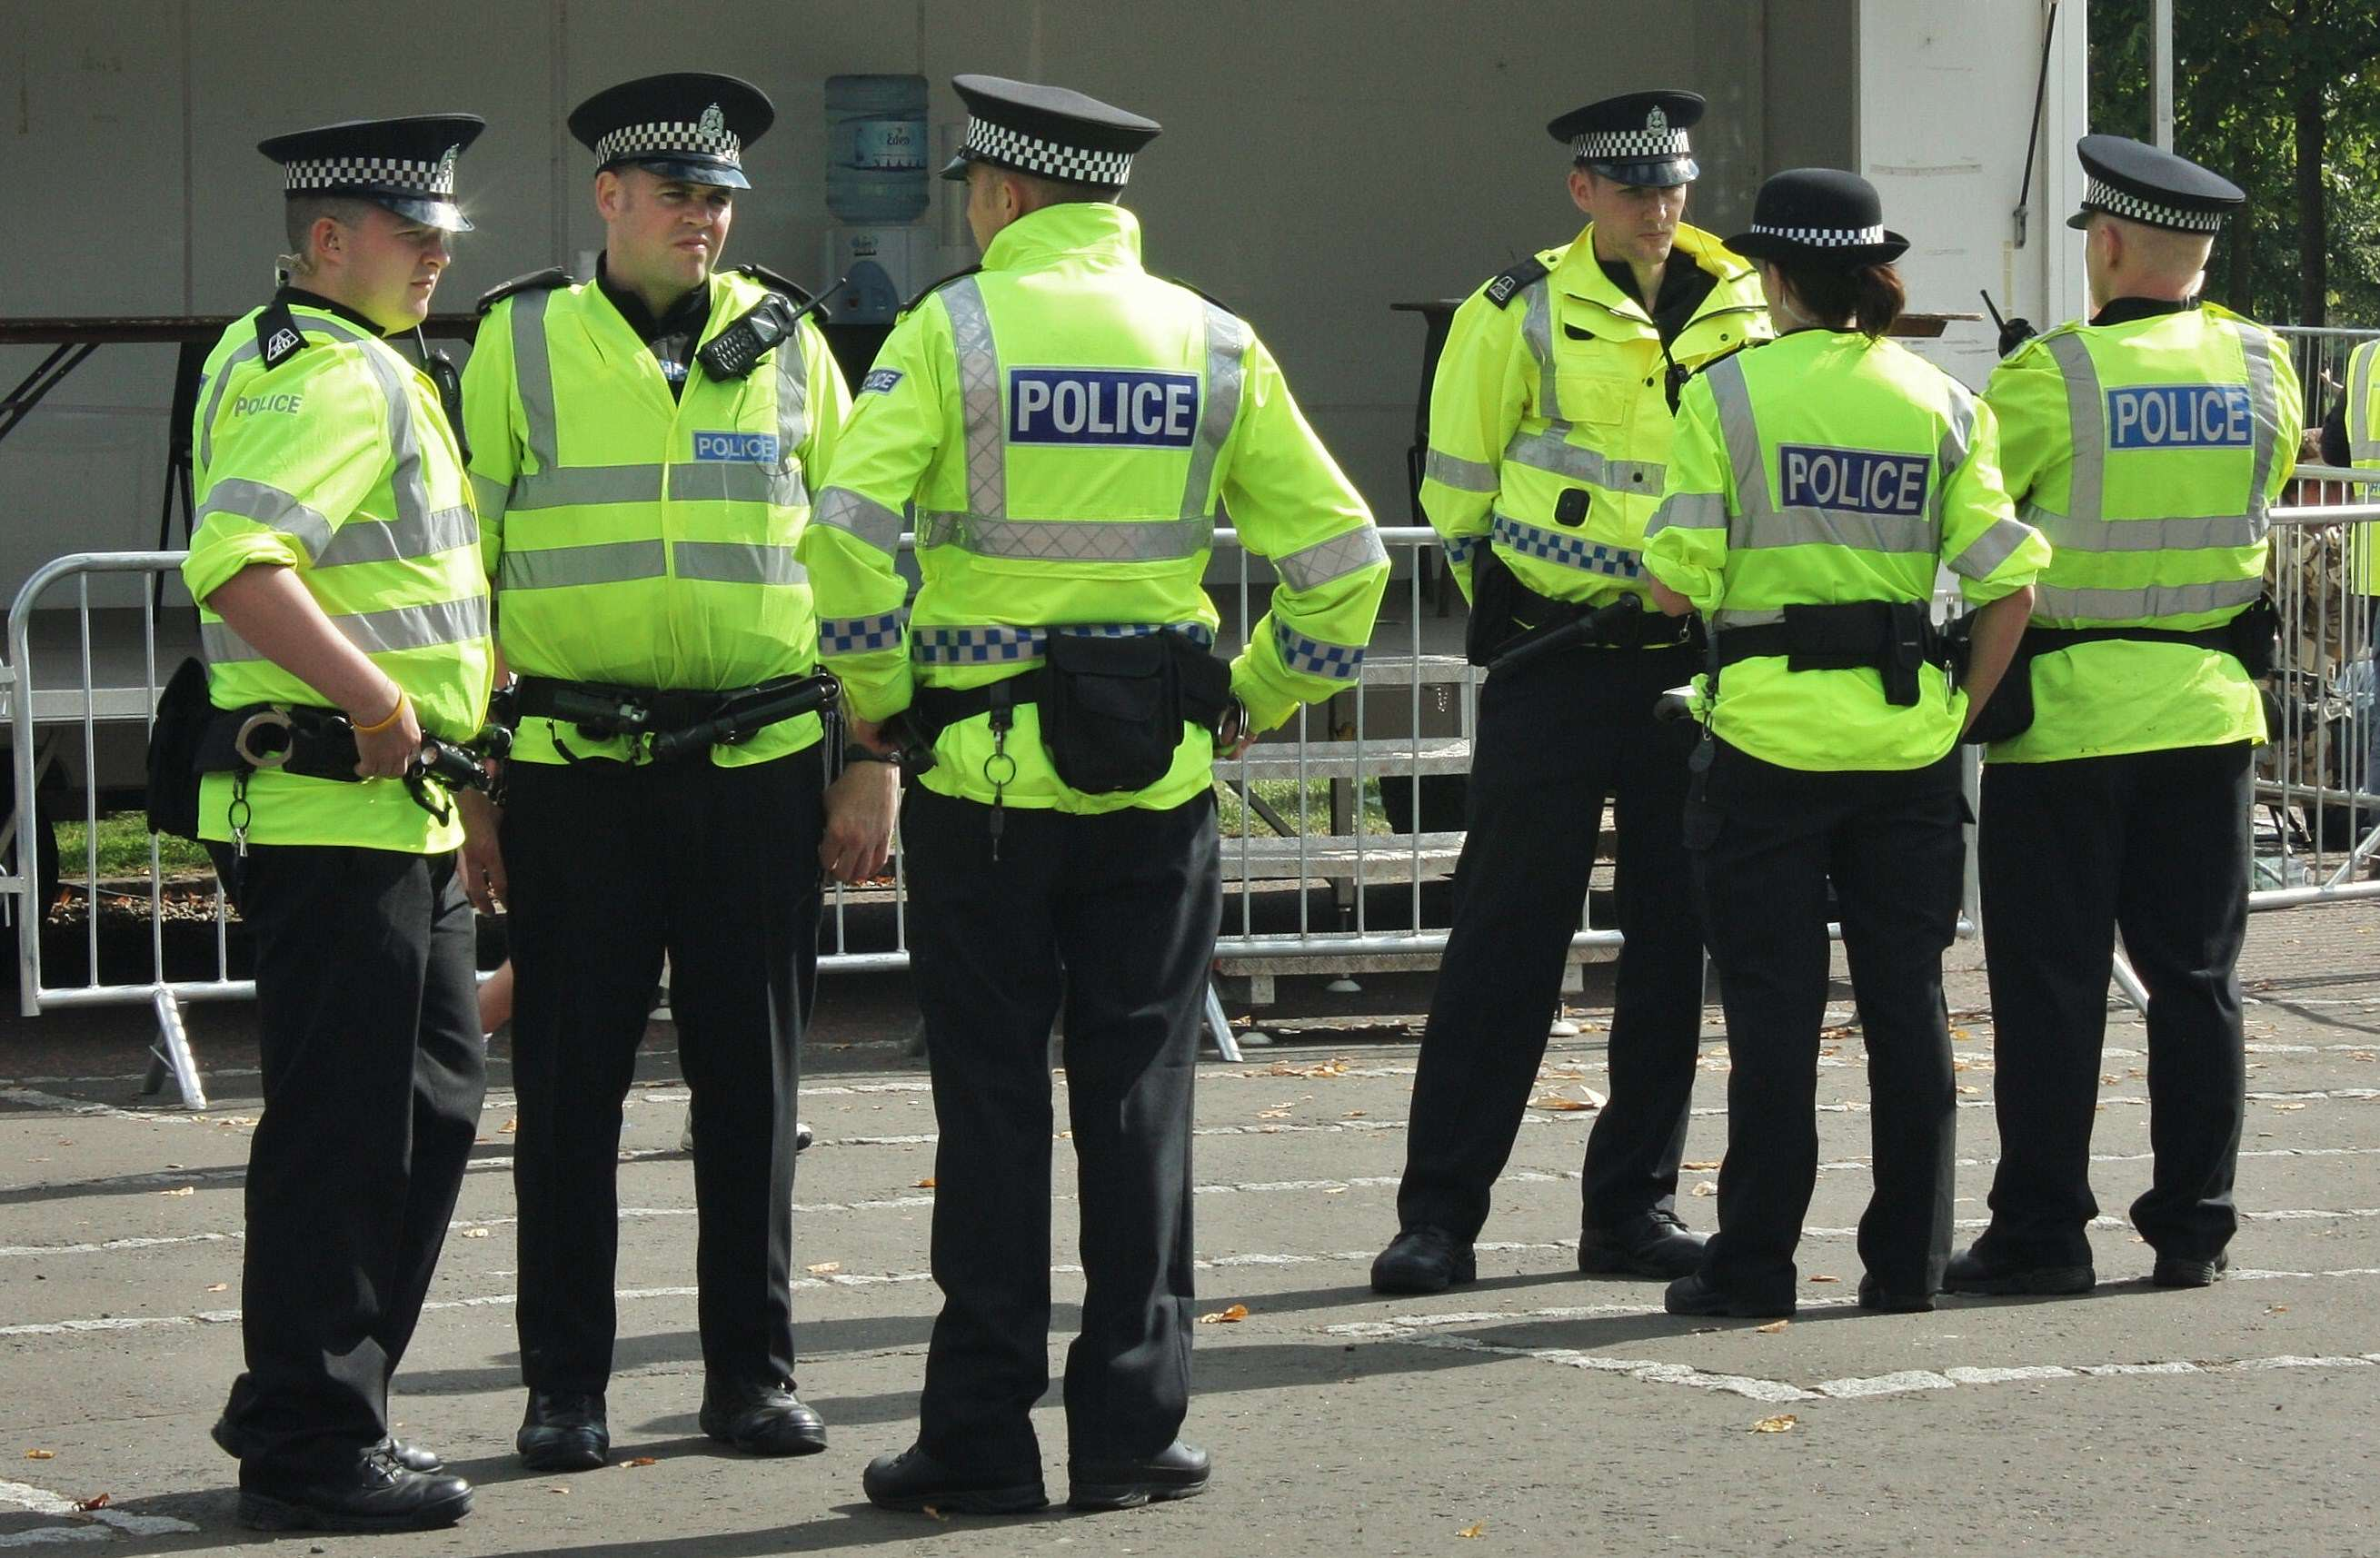 Paedophiles Could Be Warned Rather Than Arrested In Controversial New Scheme Police in Glasgow